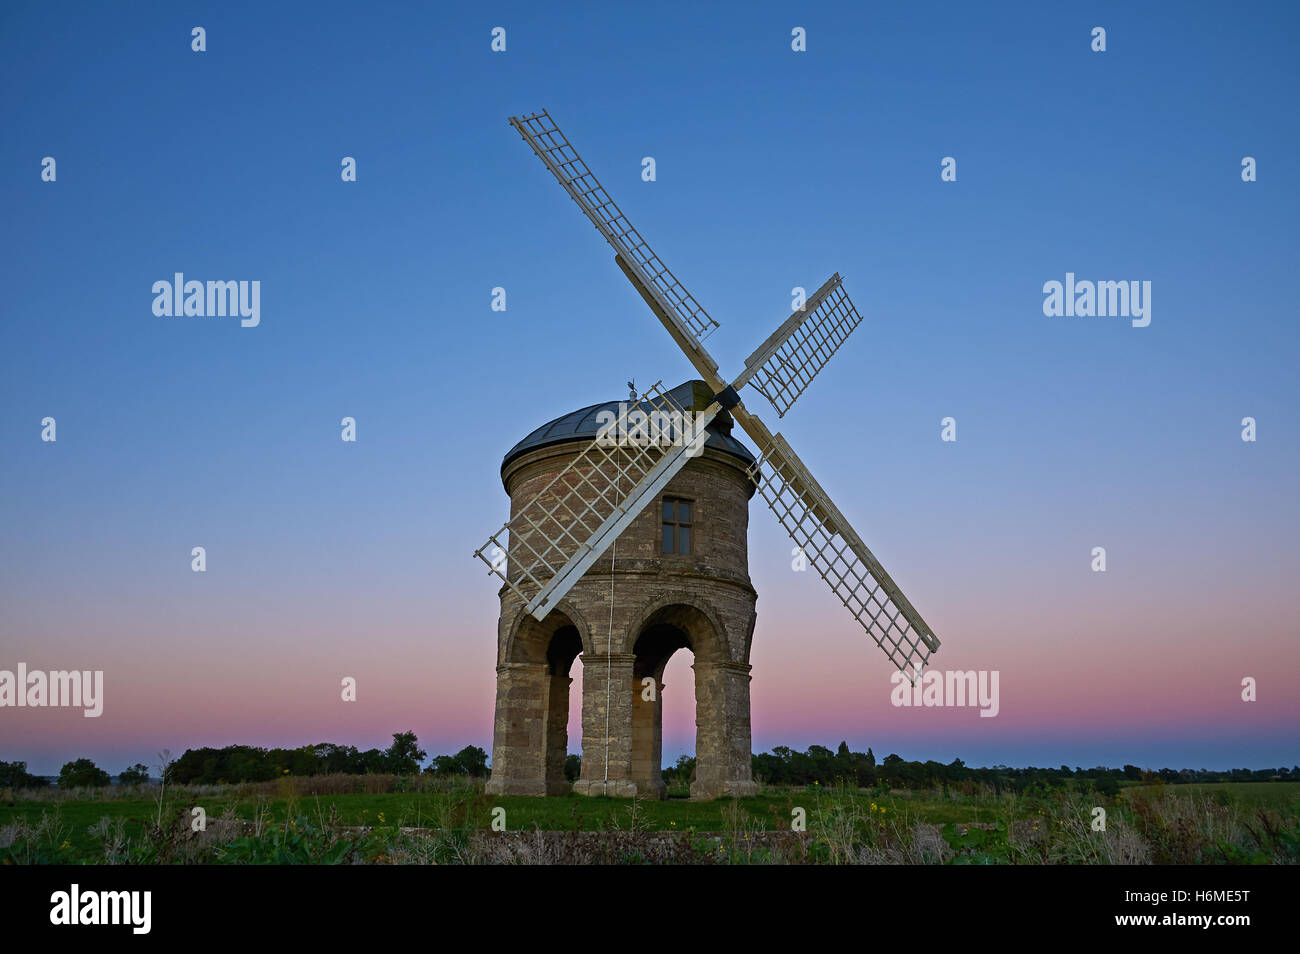 Chesterton Windmill in Warwickshire is a unique building in the landscape, designed by Sir Edmund Peyto - Stock Image